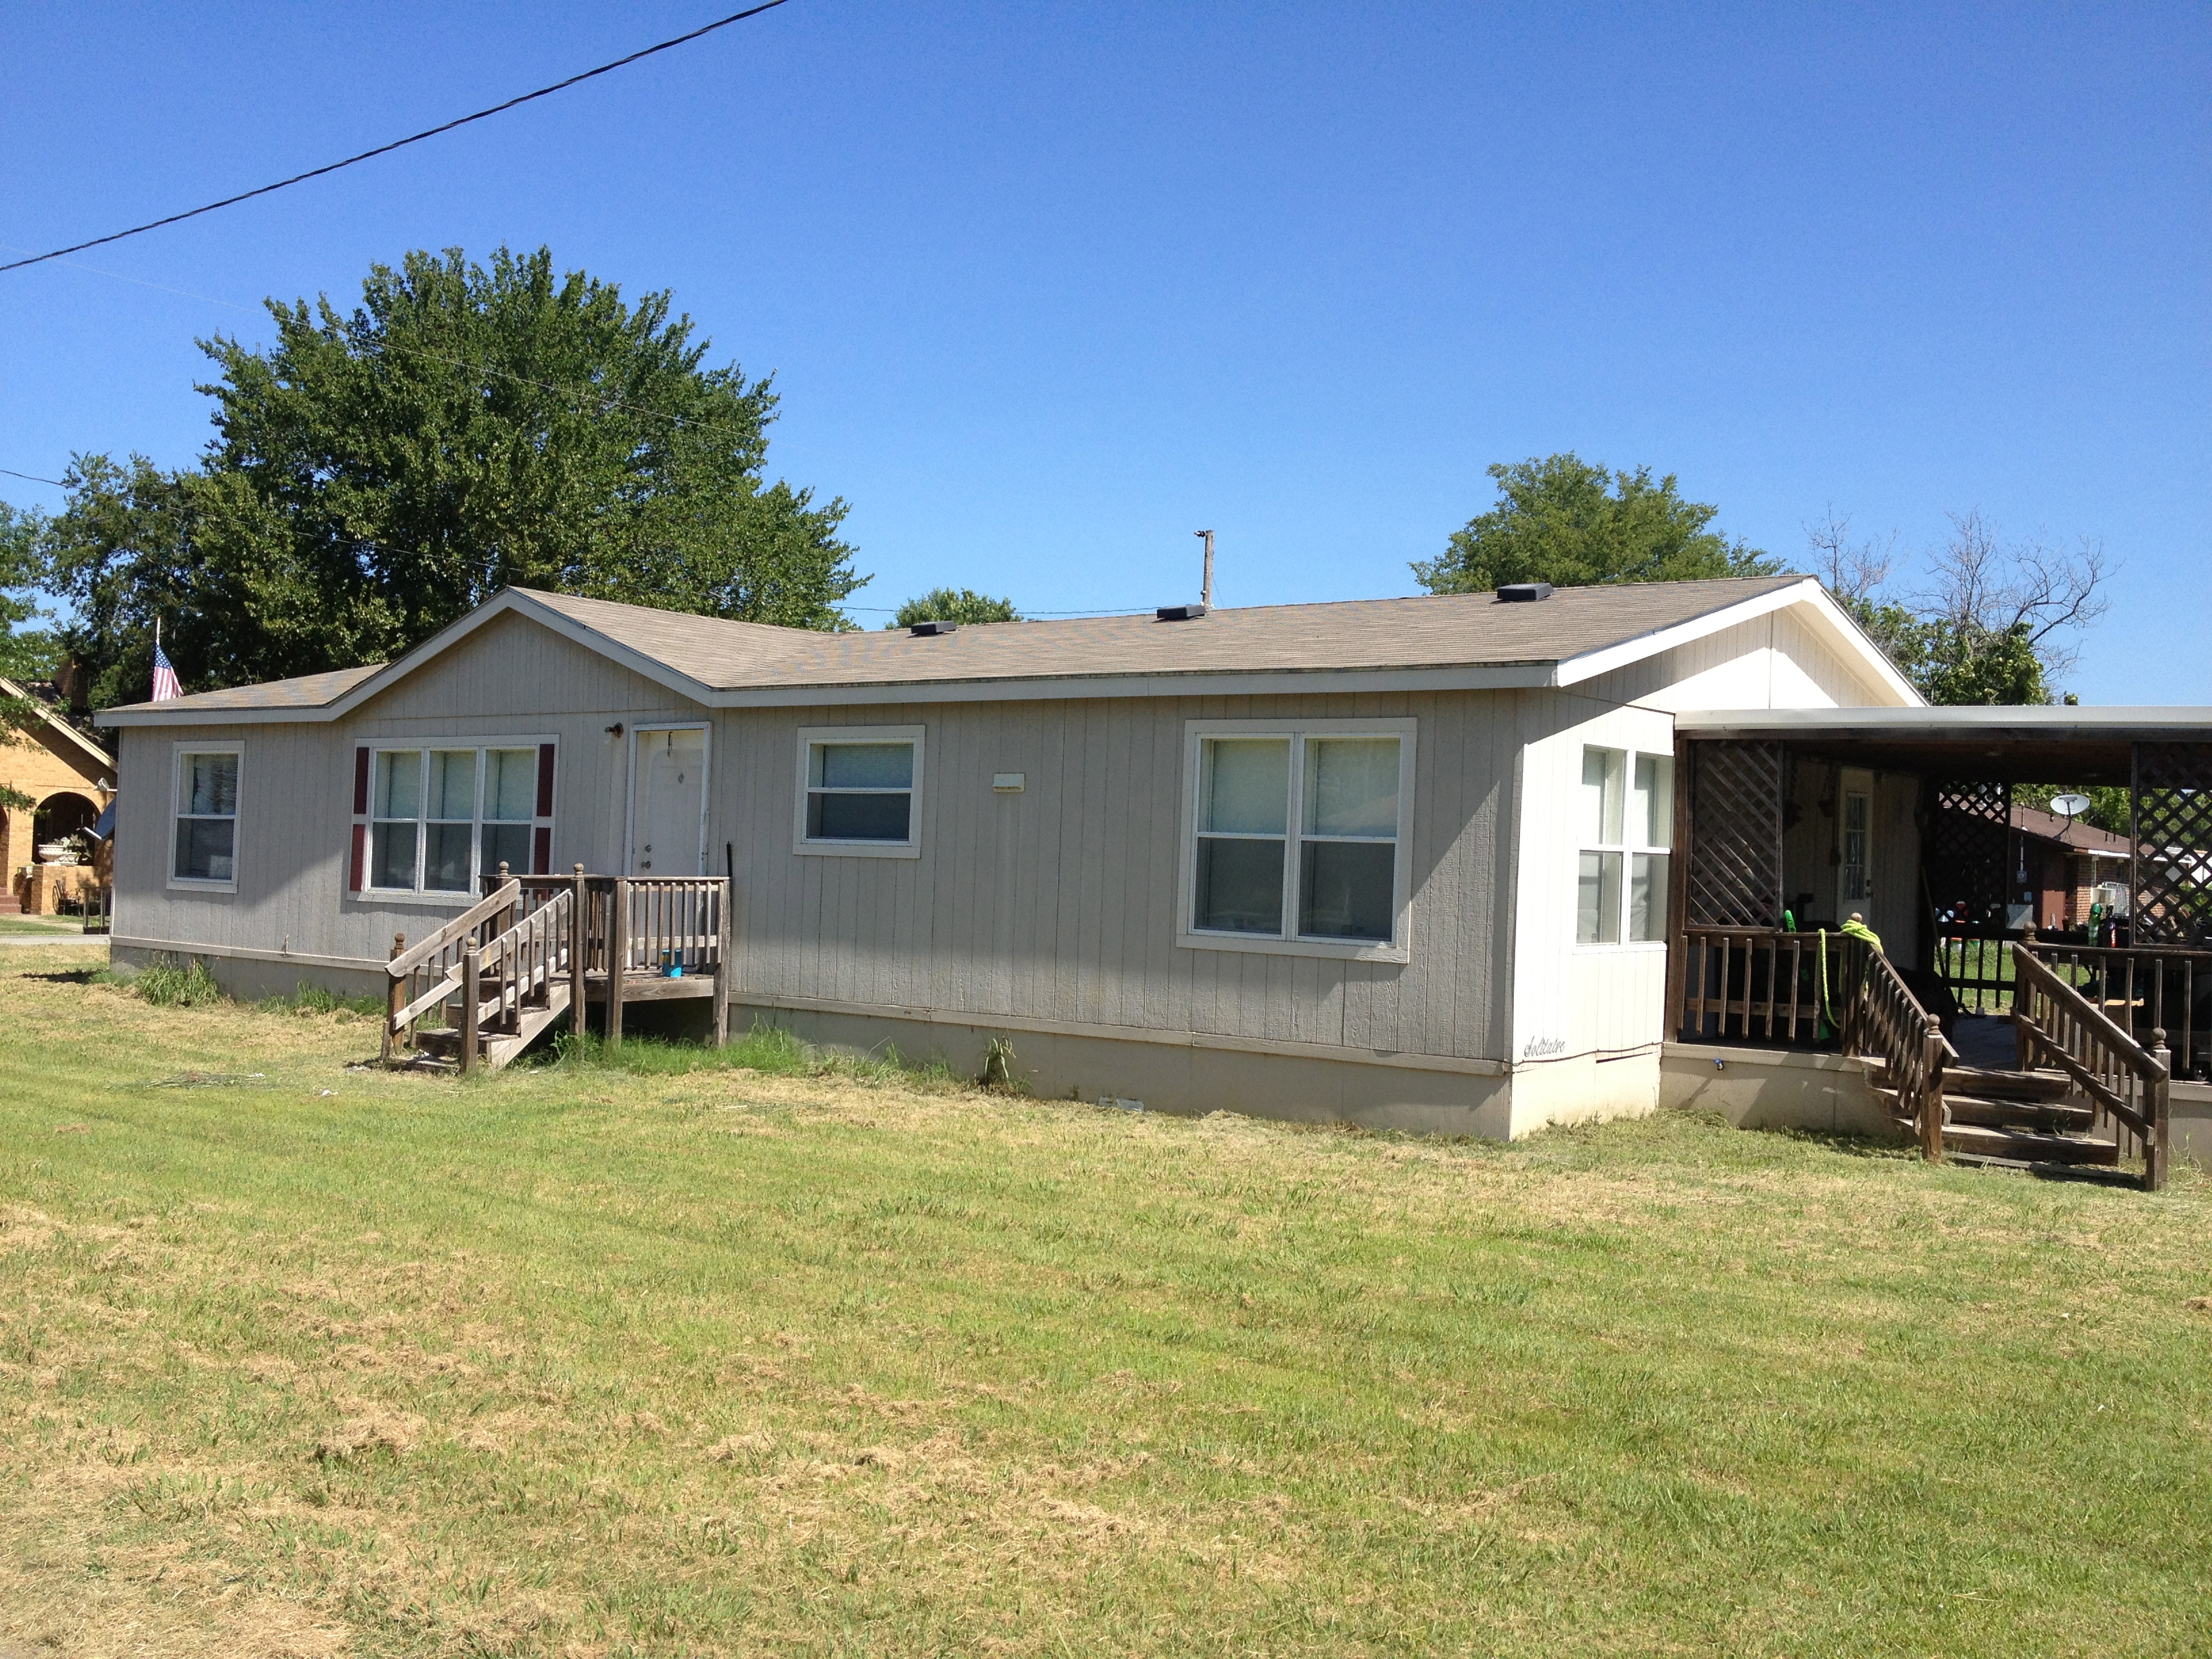 Mobile Home For Rent 3 Bedroom in Allen. Mobile Home For Rent In Allen  OK 74825 580Rentals com